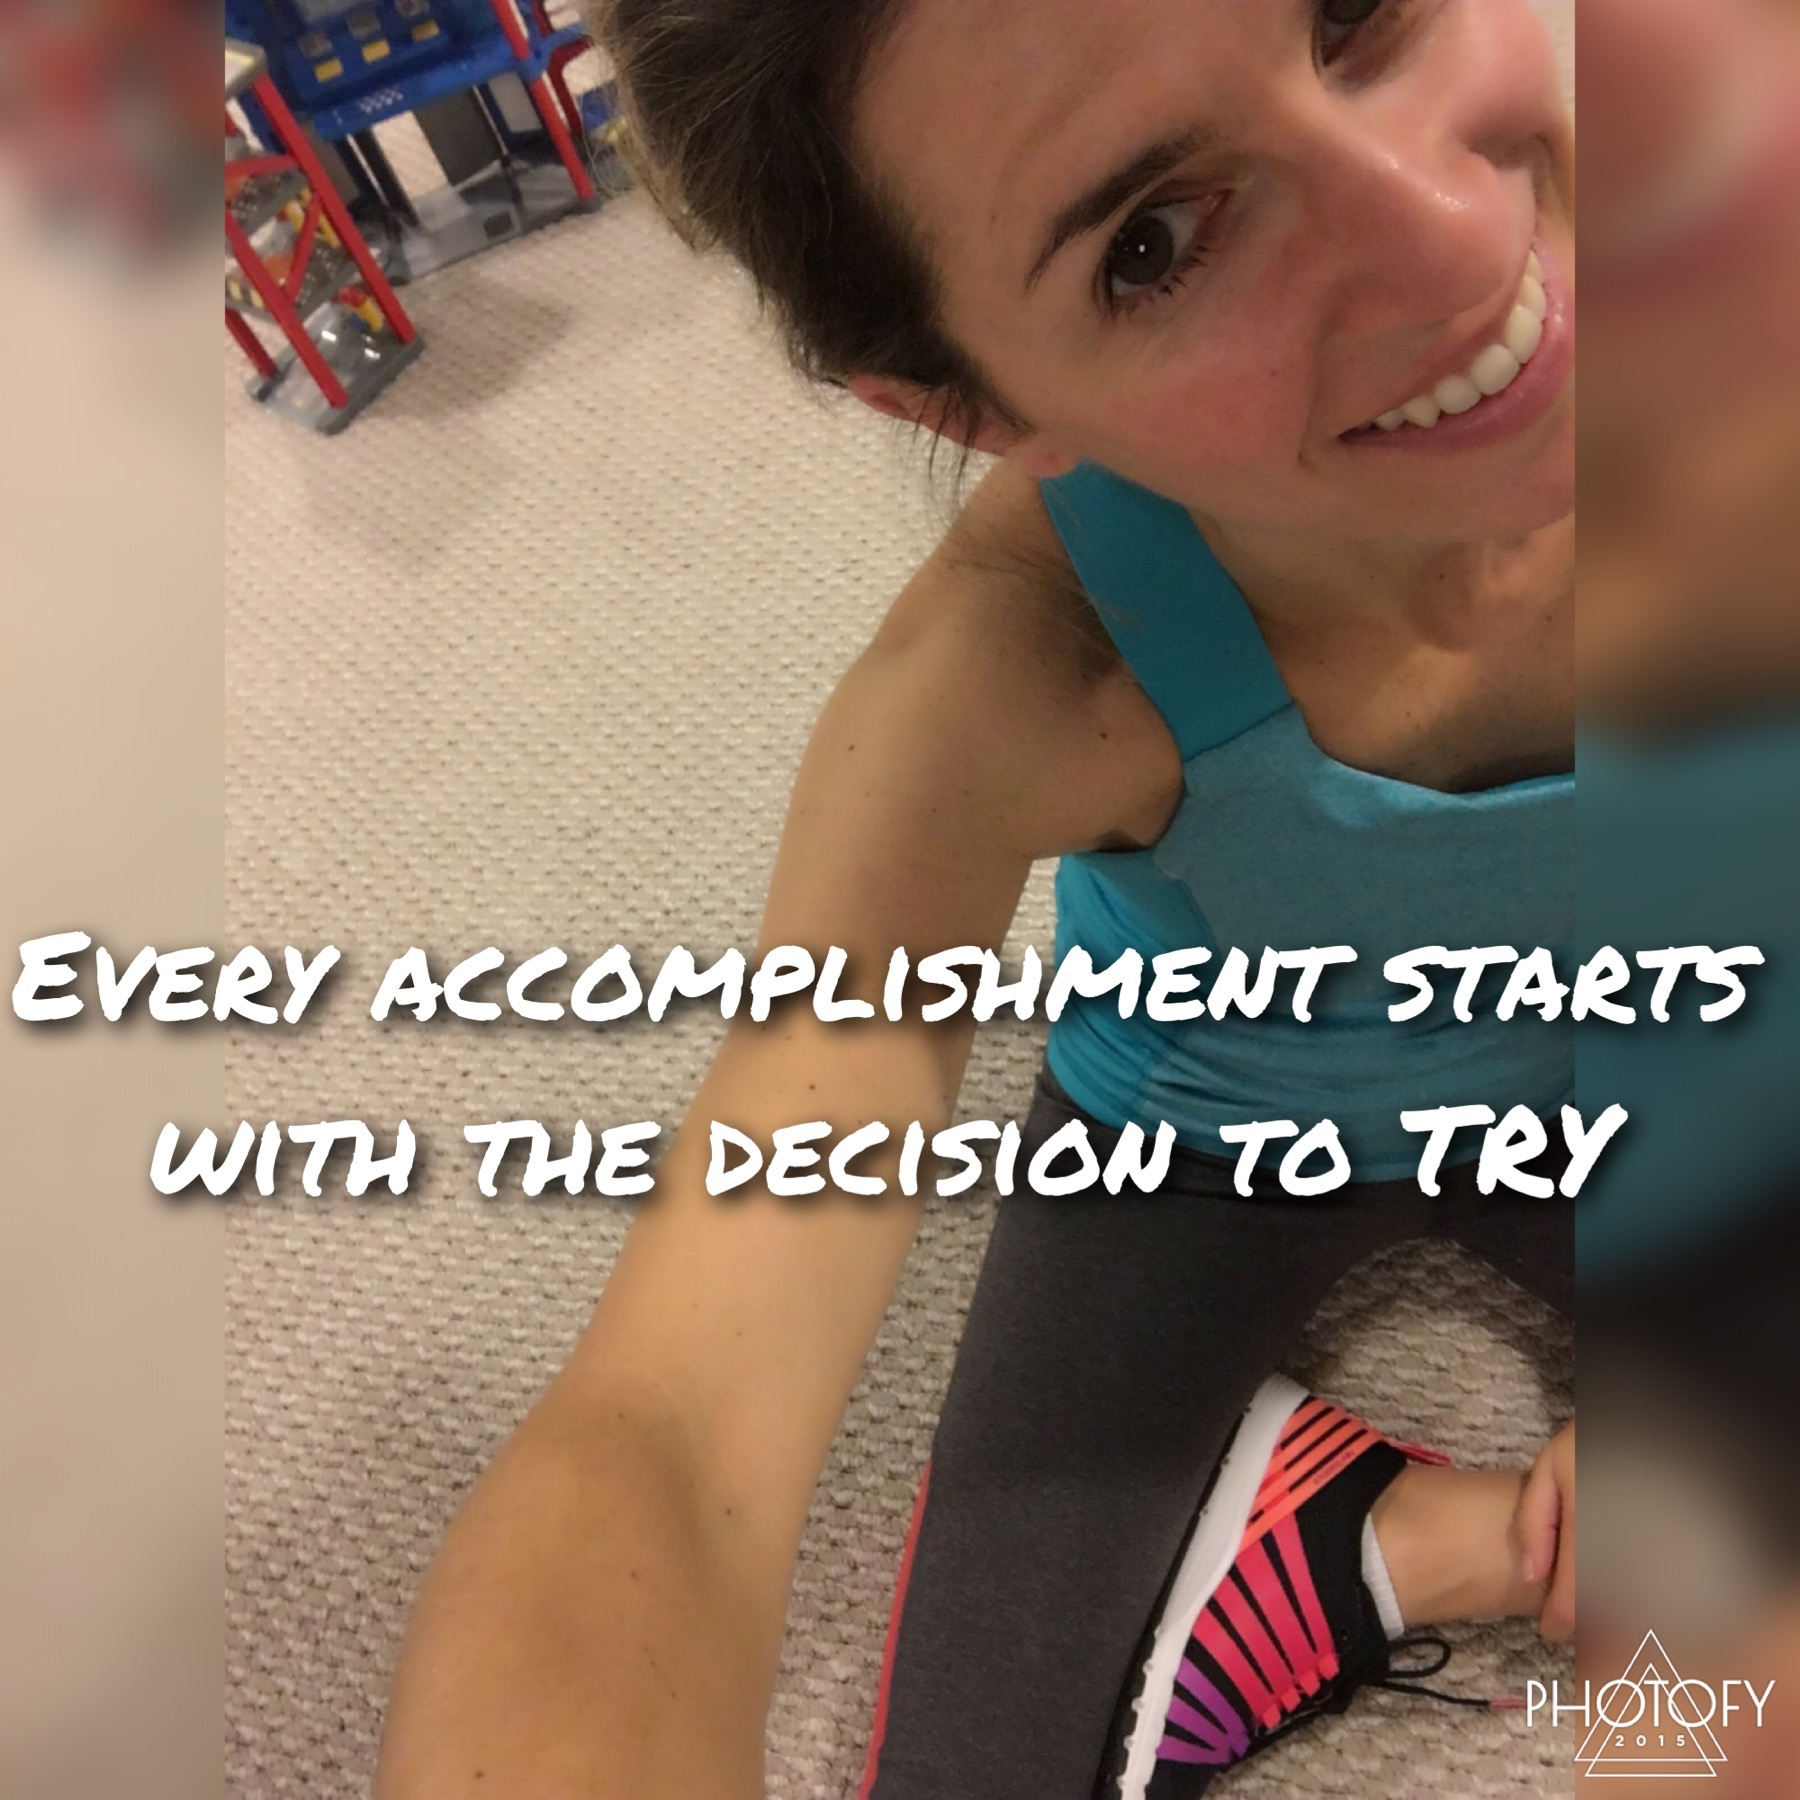 My coaching journey started with the decision to take a leap and give it a shot! I haven't regretted it for one minute.